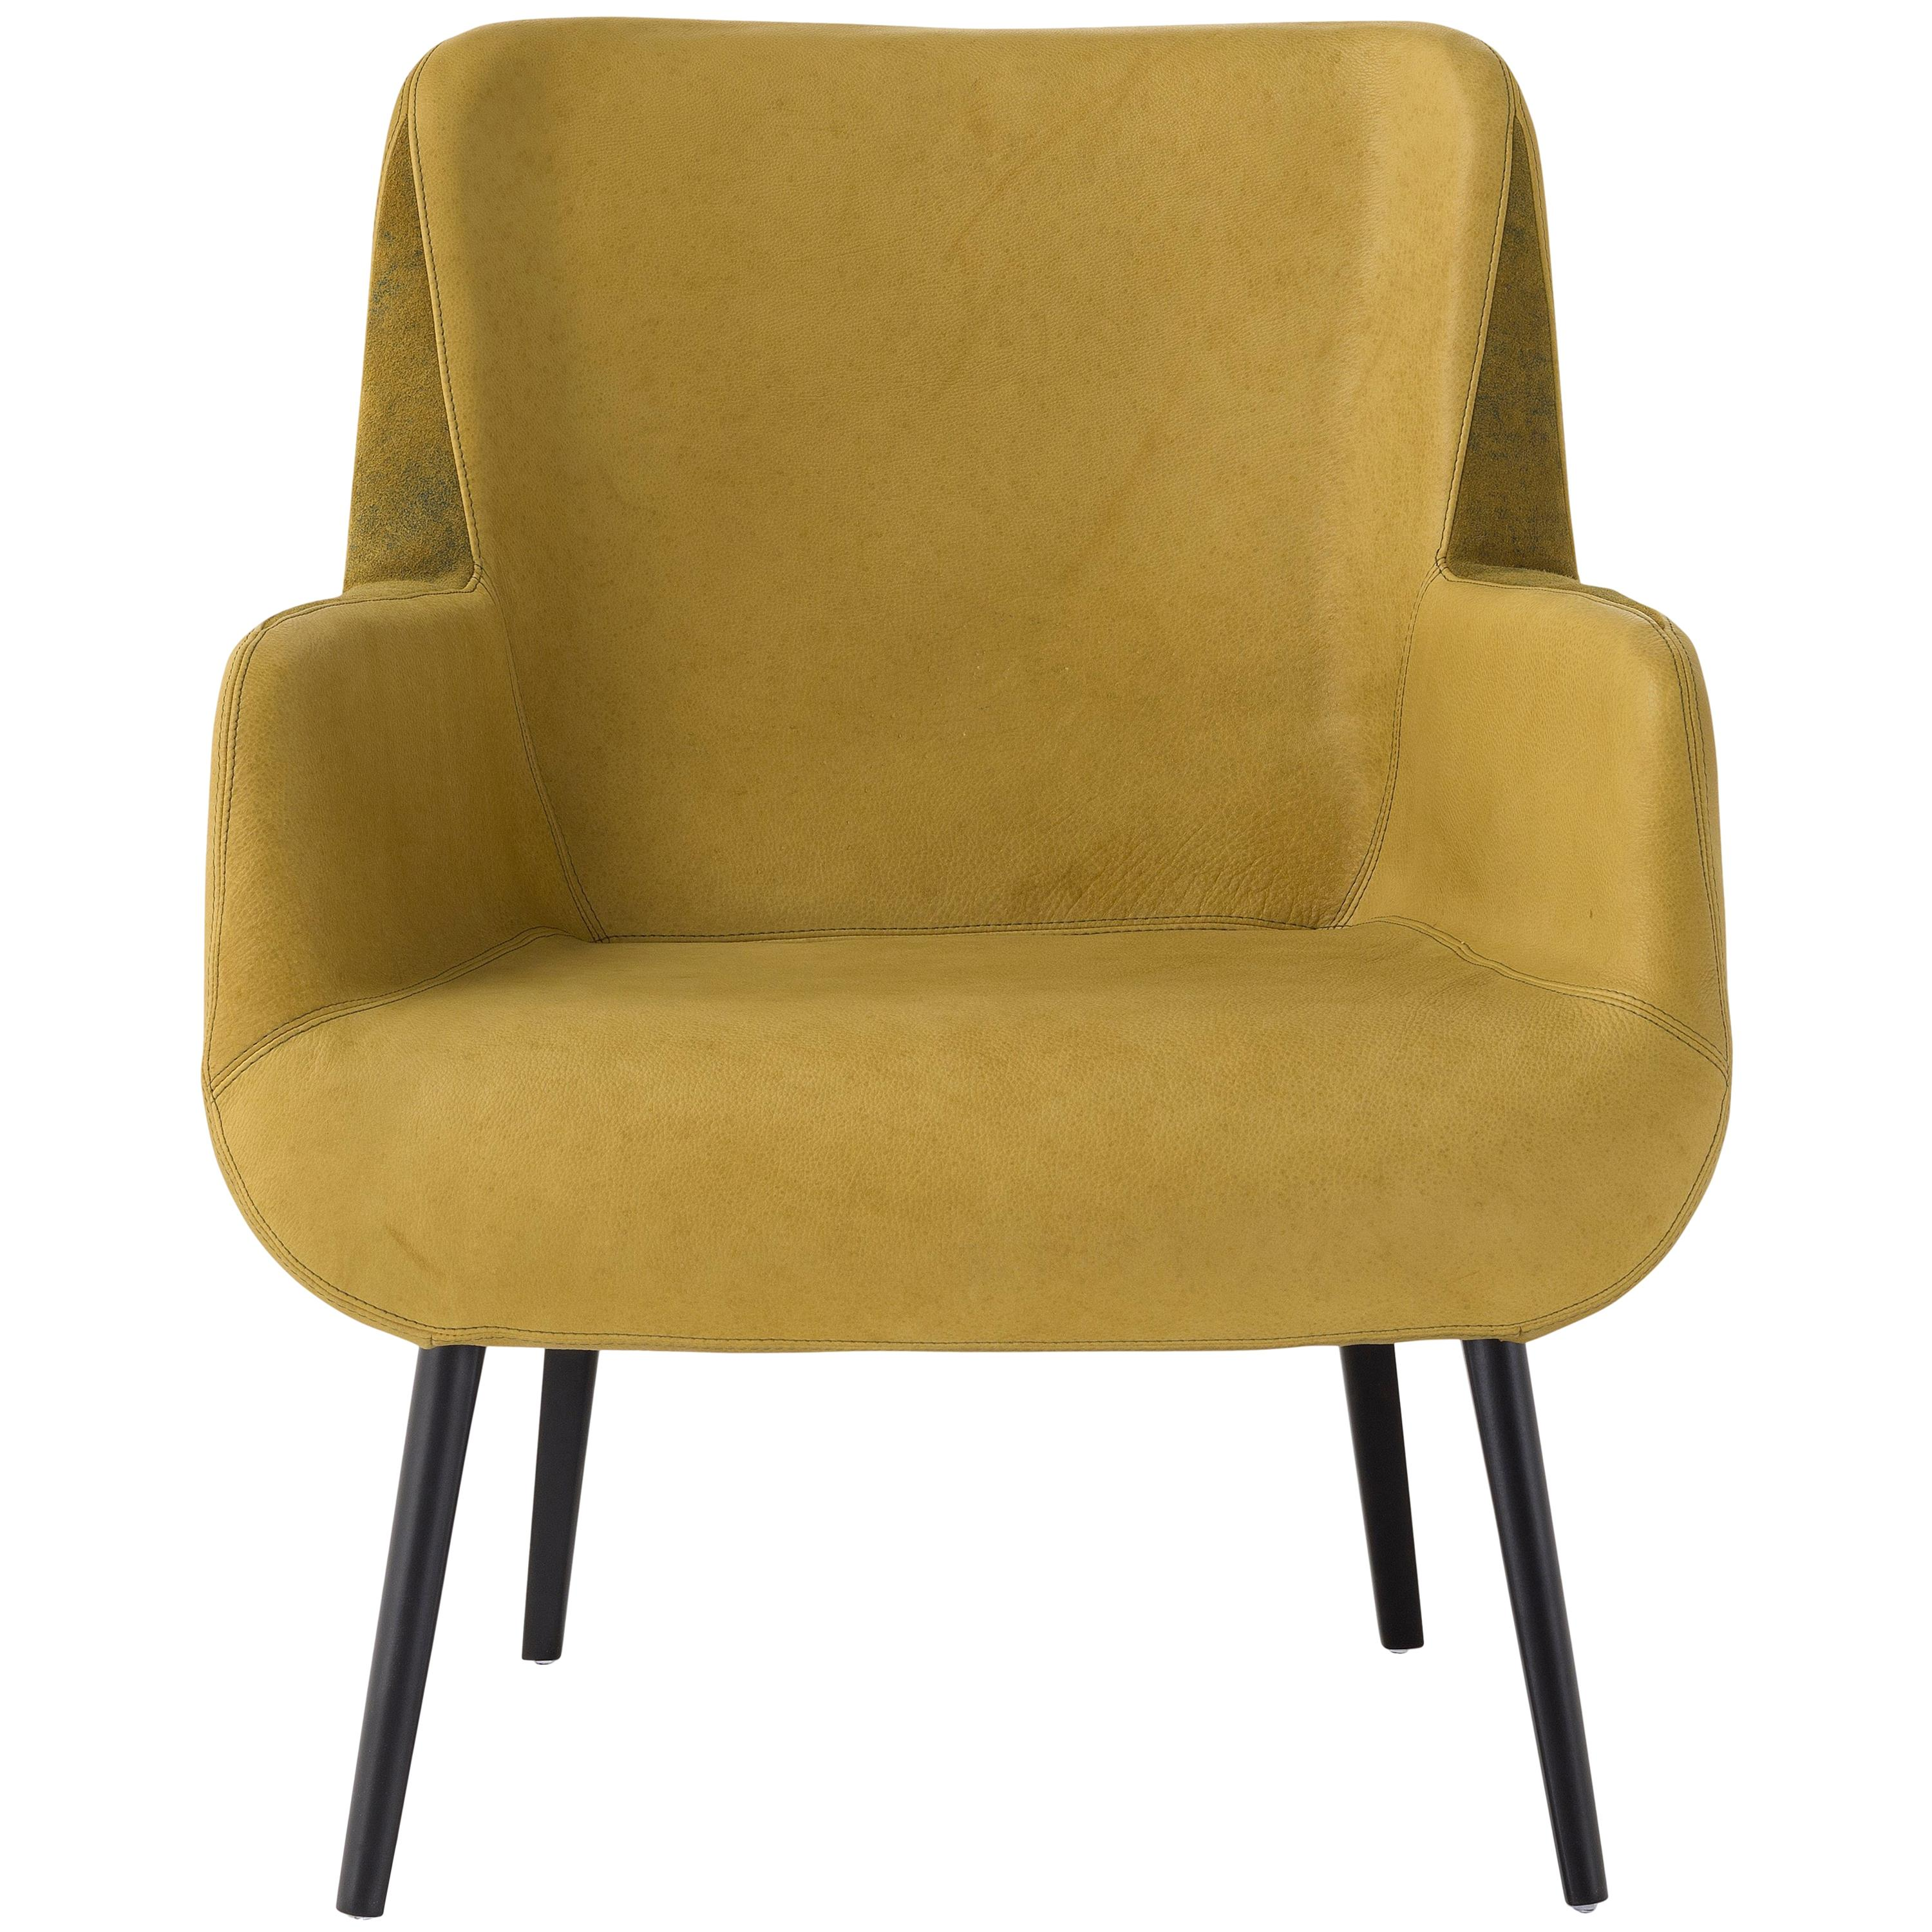 Yellow leather chair Old 1stdibs Yellow Leather Chairs 102 For Sale On 1stdibs